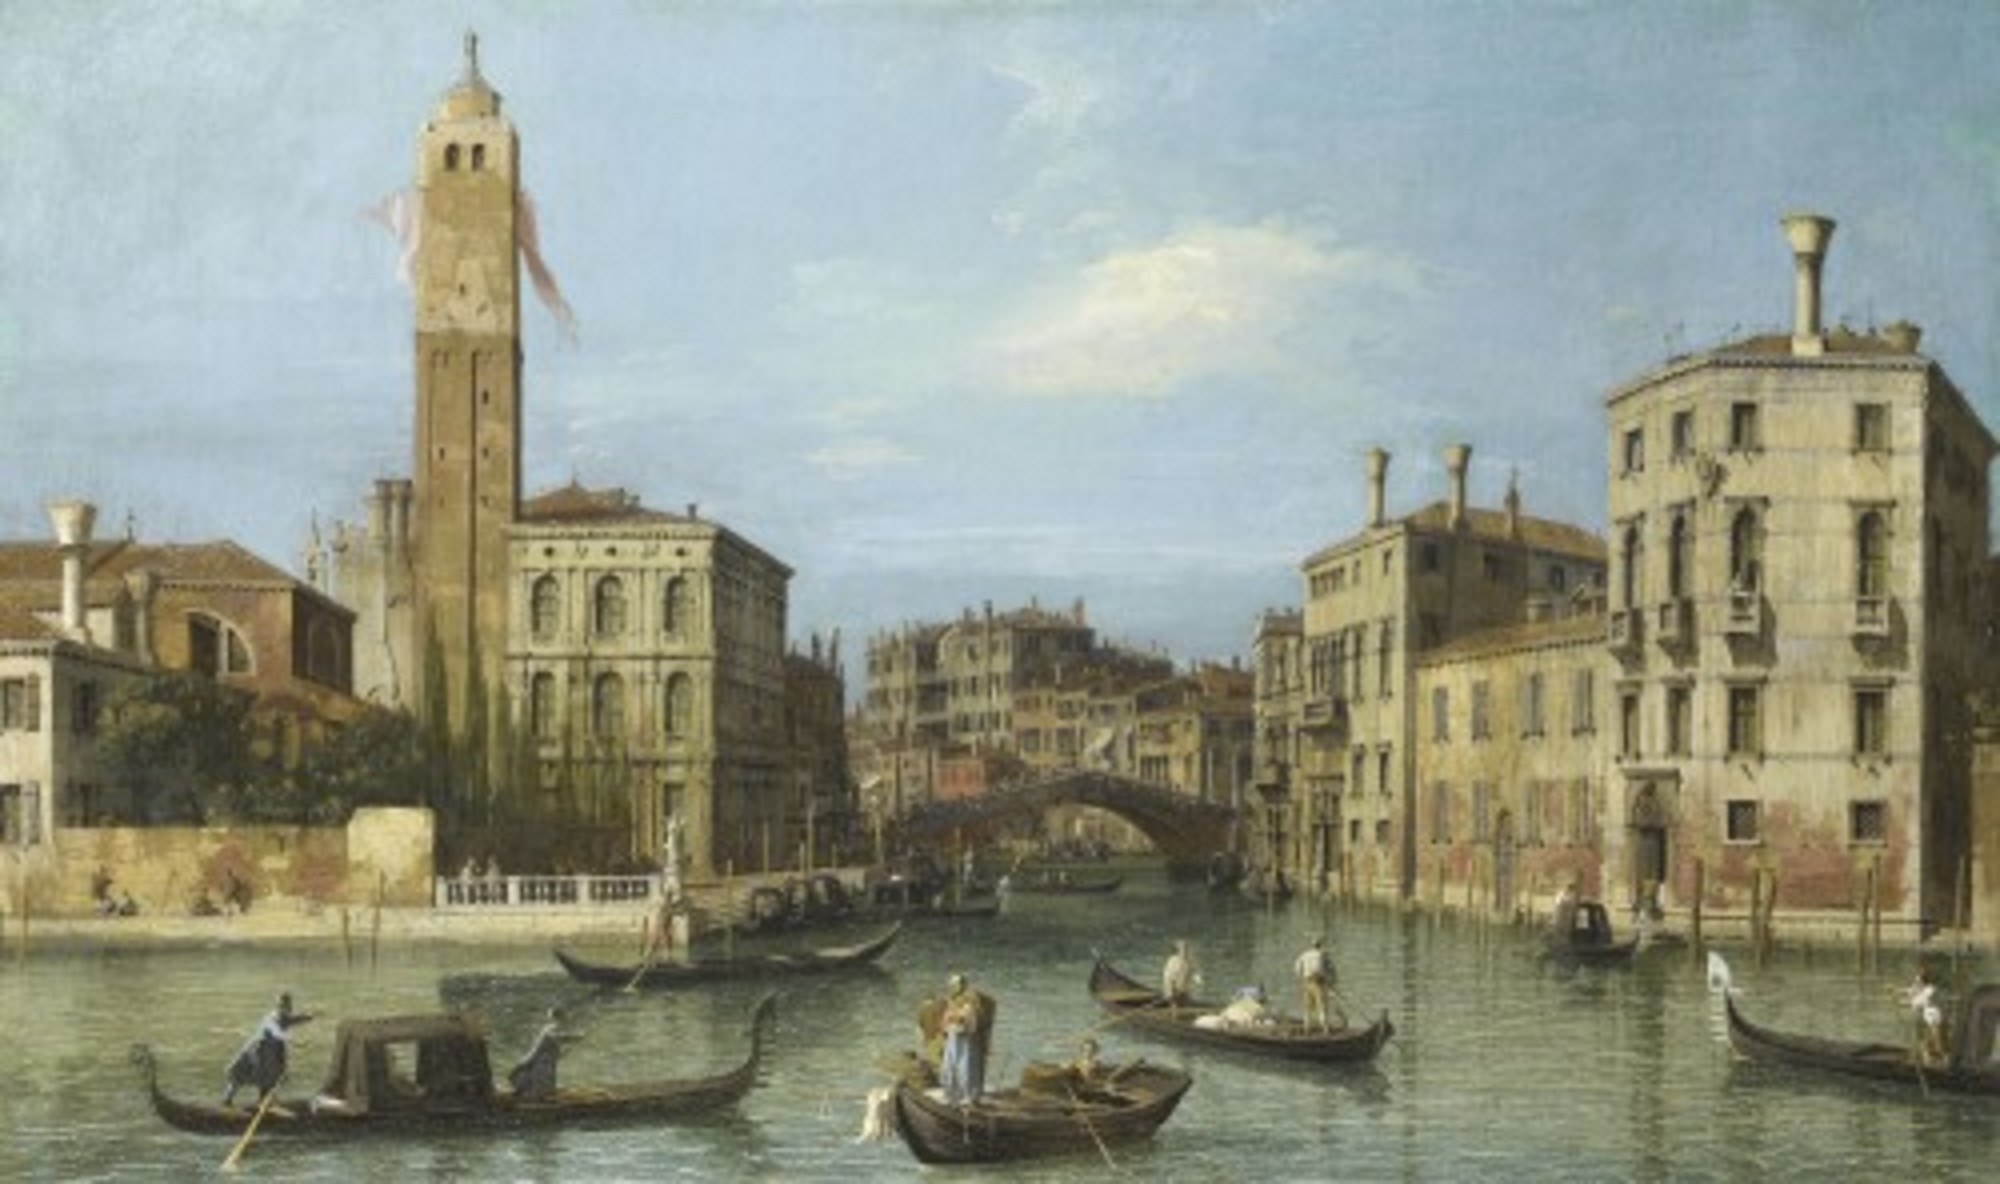 Canaletto---S.-Geremia-and-the-Entrance-to-the-Cannaregio-RCIN-400532.jpg